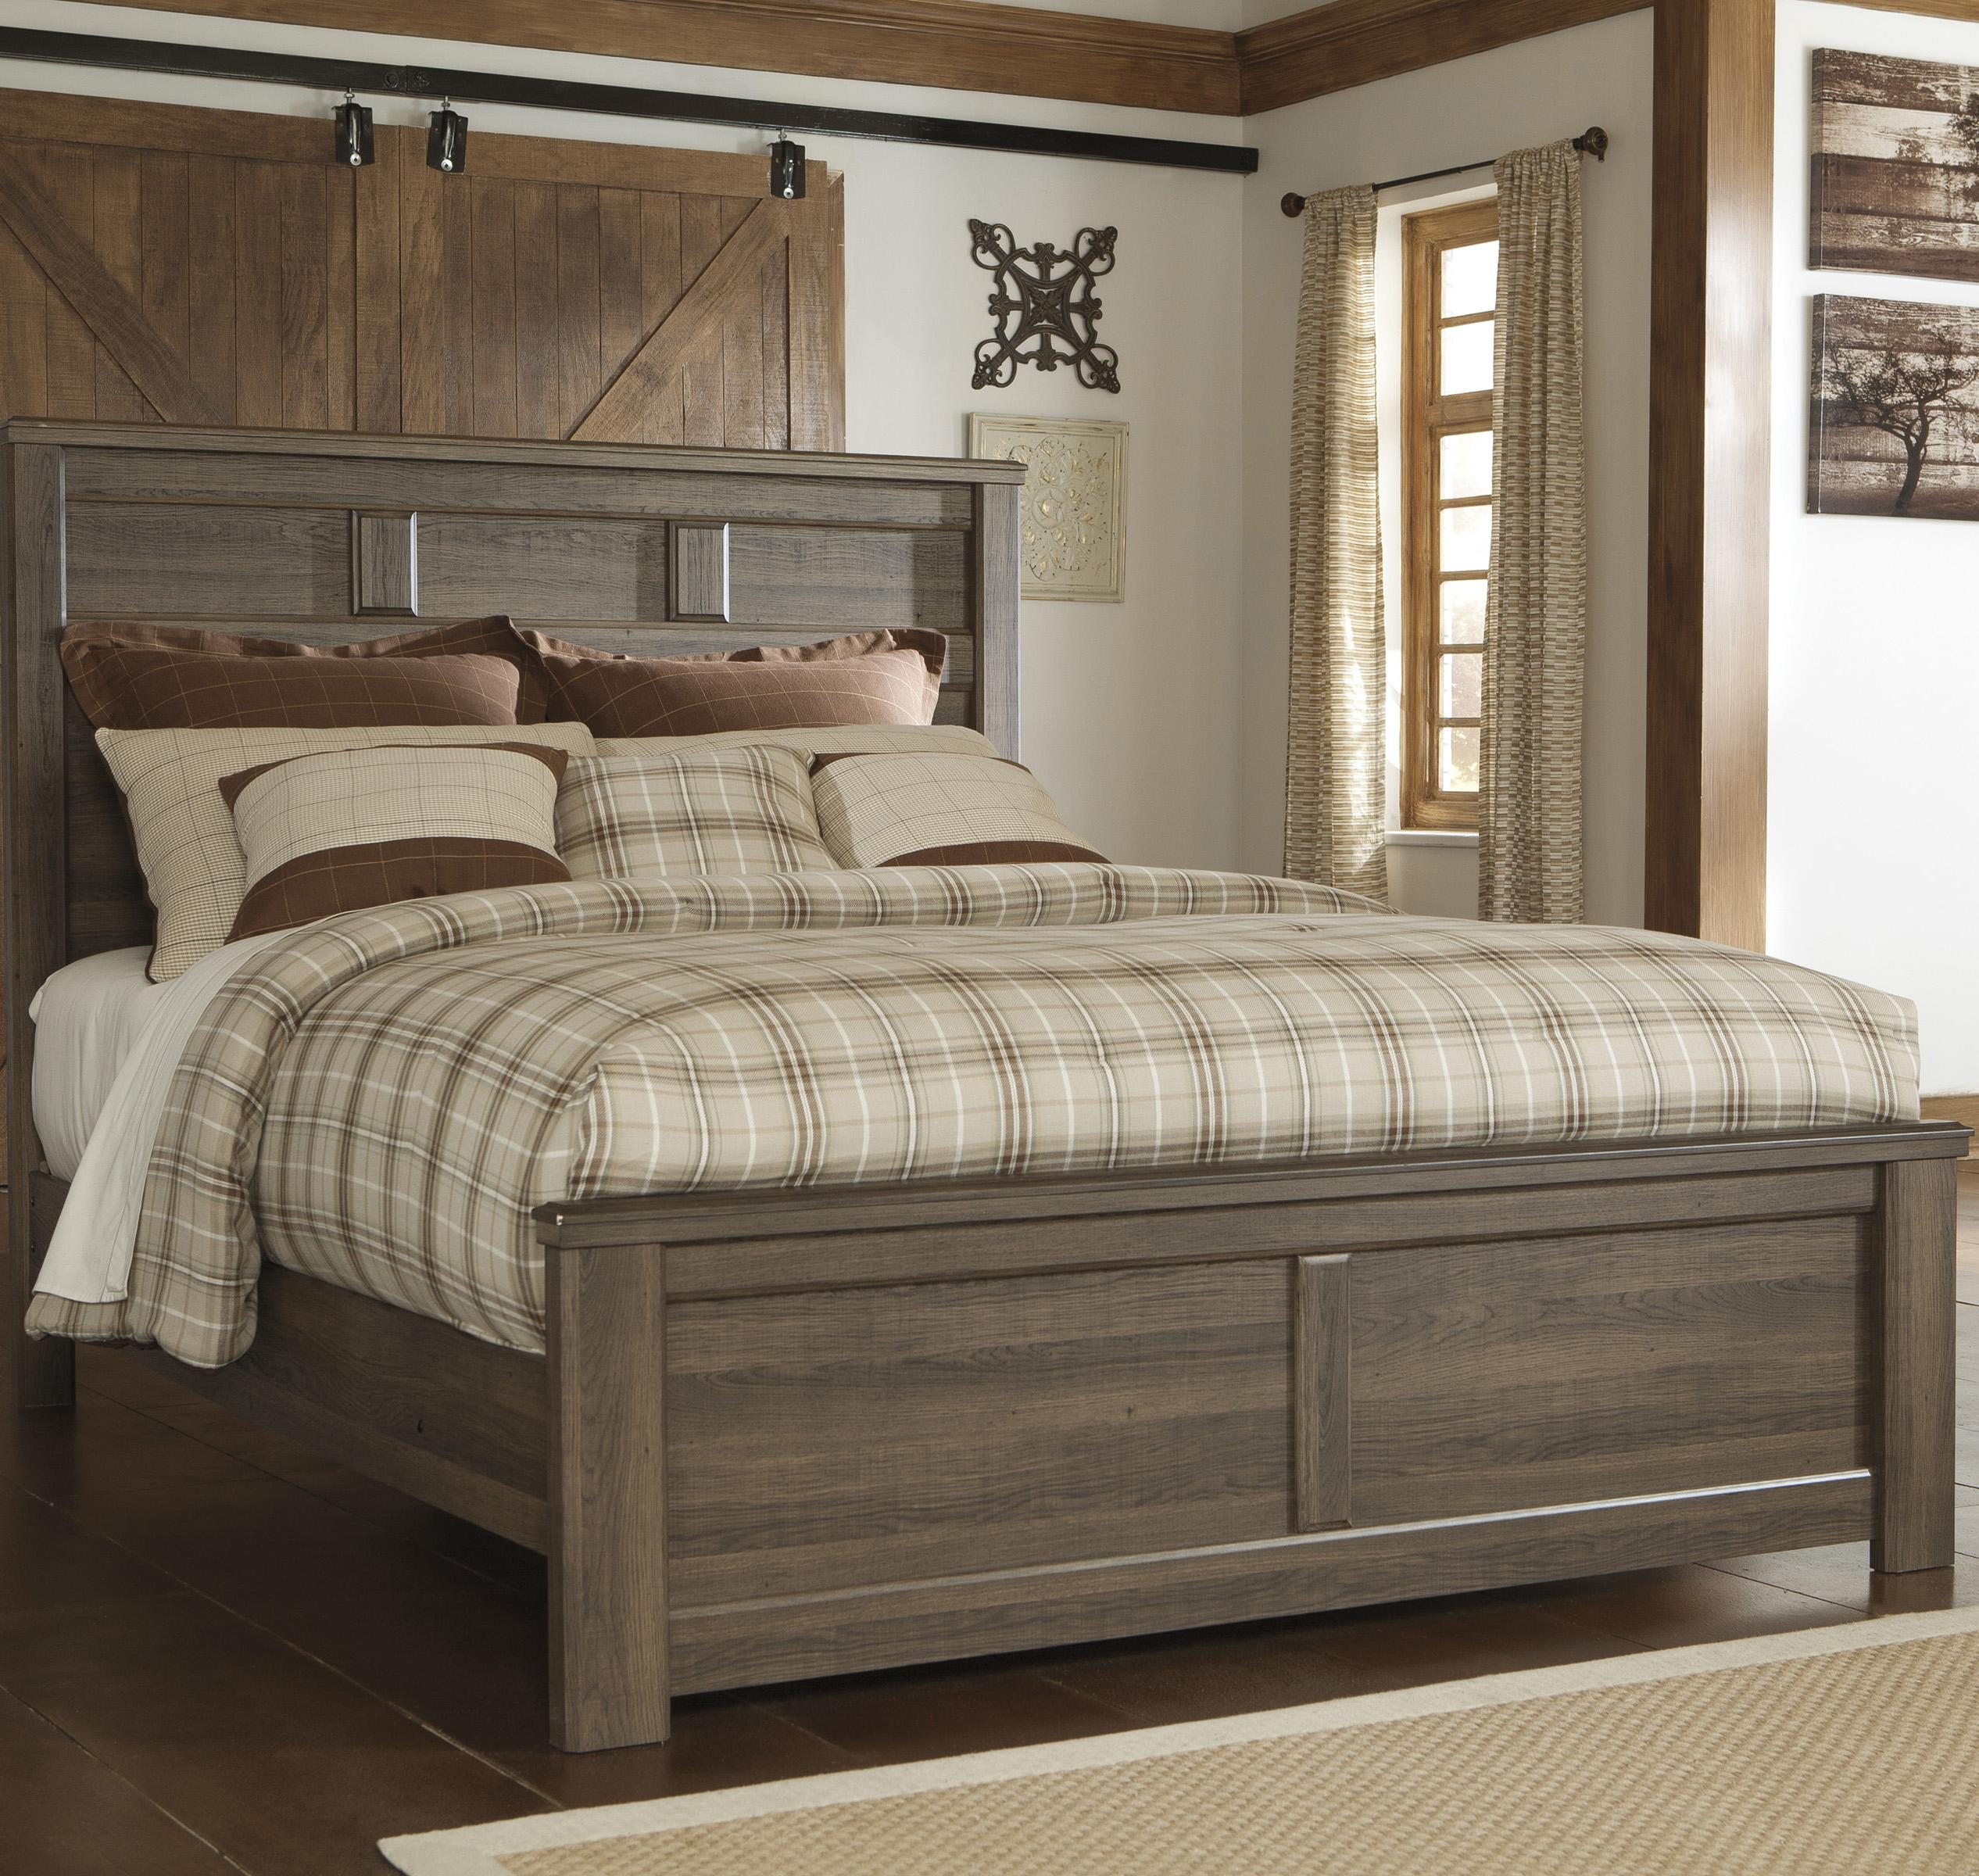 Signature Design by Ashley Juararo Queen Panel Bed - Item Number: B251-57+54+98